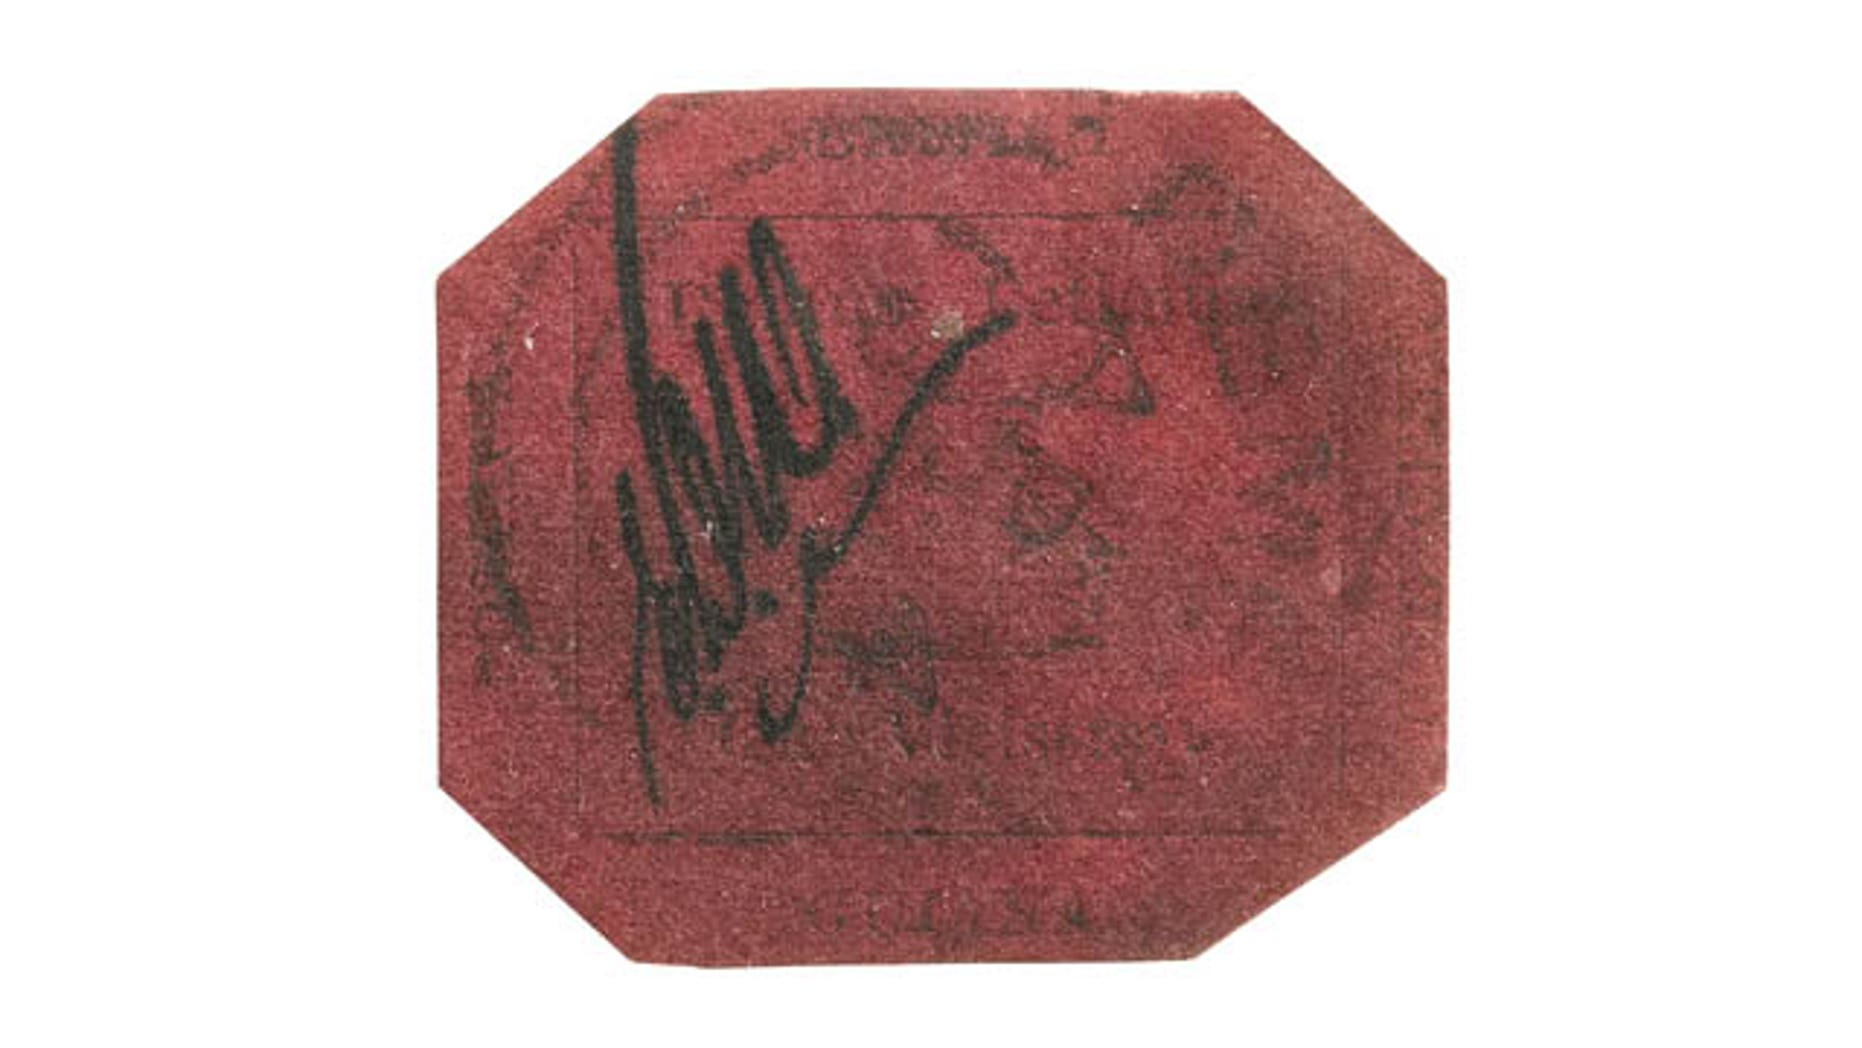 FILE - In this undated file photo provided by Sothebys Auction House, the 1-cent 1856 British Guiana stamp is shown. (AP Photo/Sothebys Auction House)